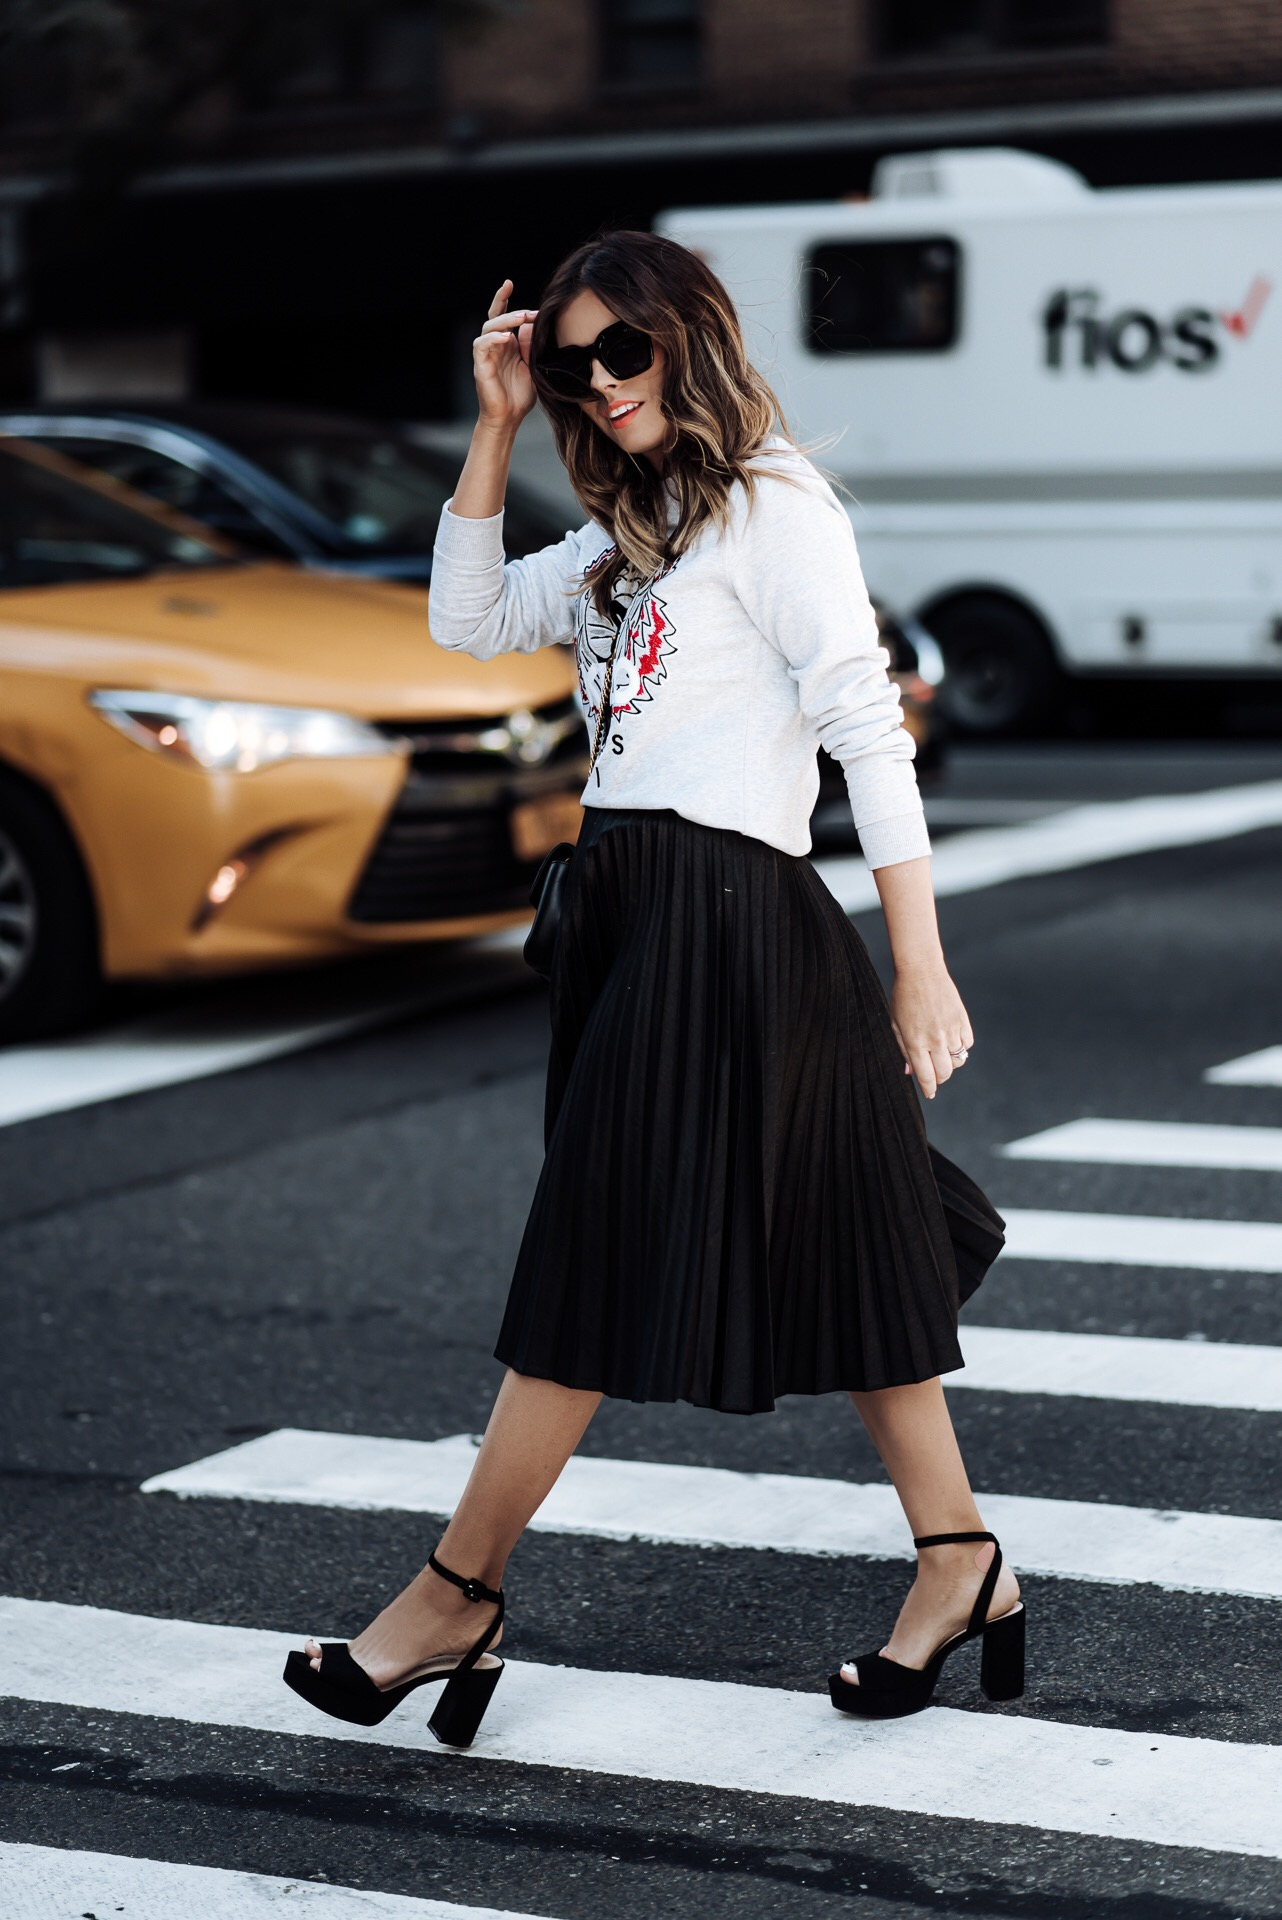 Tiffany Jais fashion and lifestyle blogger of Flaunt and Center | NYFW | NOMO SOHO NYC | Black pleated skirt | Kenzo sweatshirt women | NYC NYFW